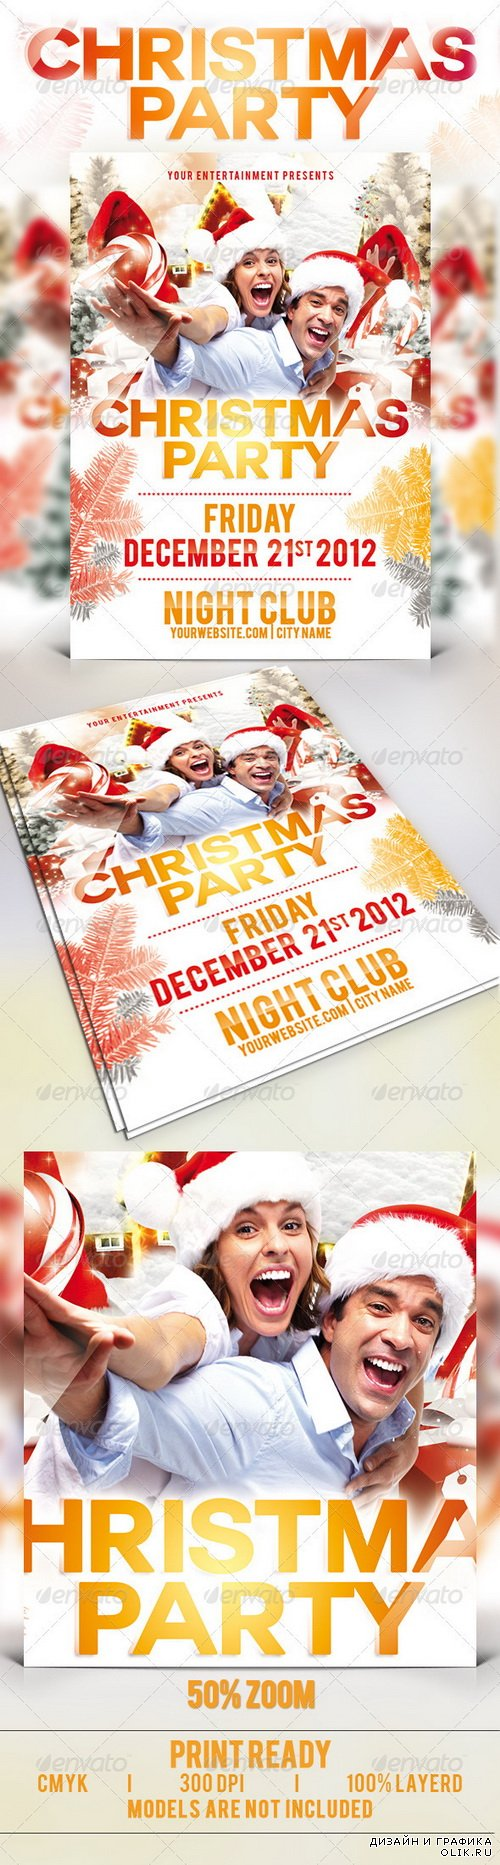 GraphicRiver - Christmas Party Flyer Template - 3362560